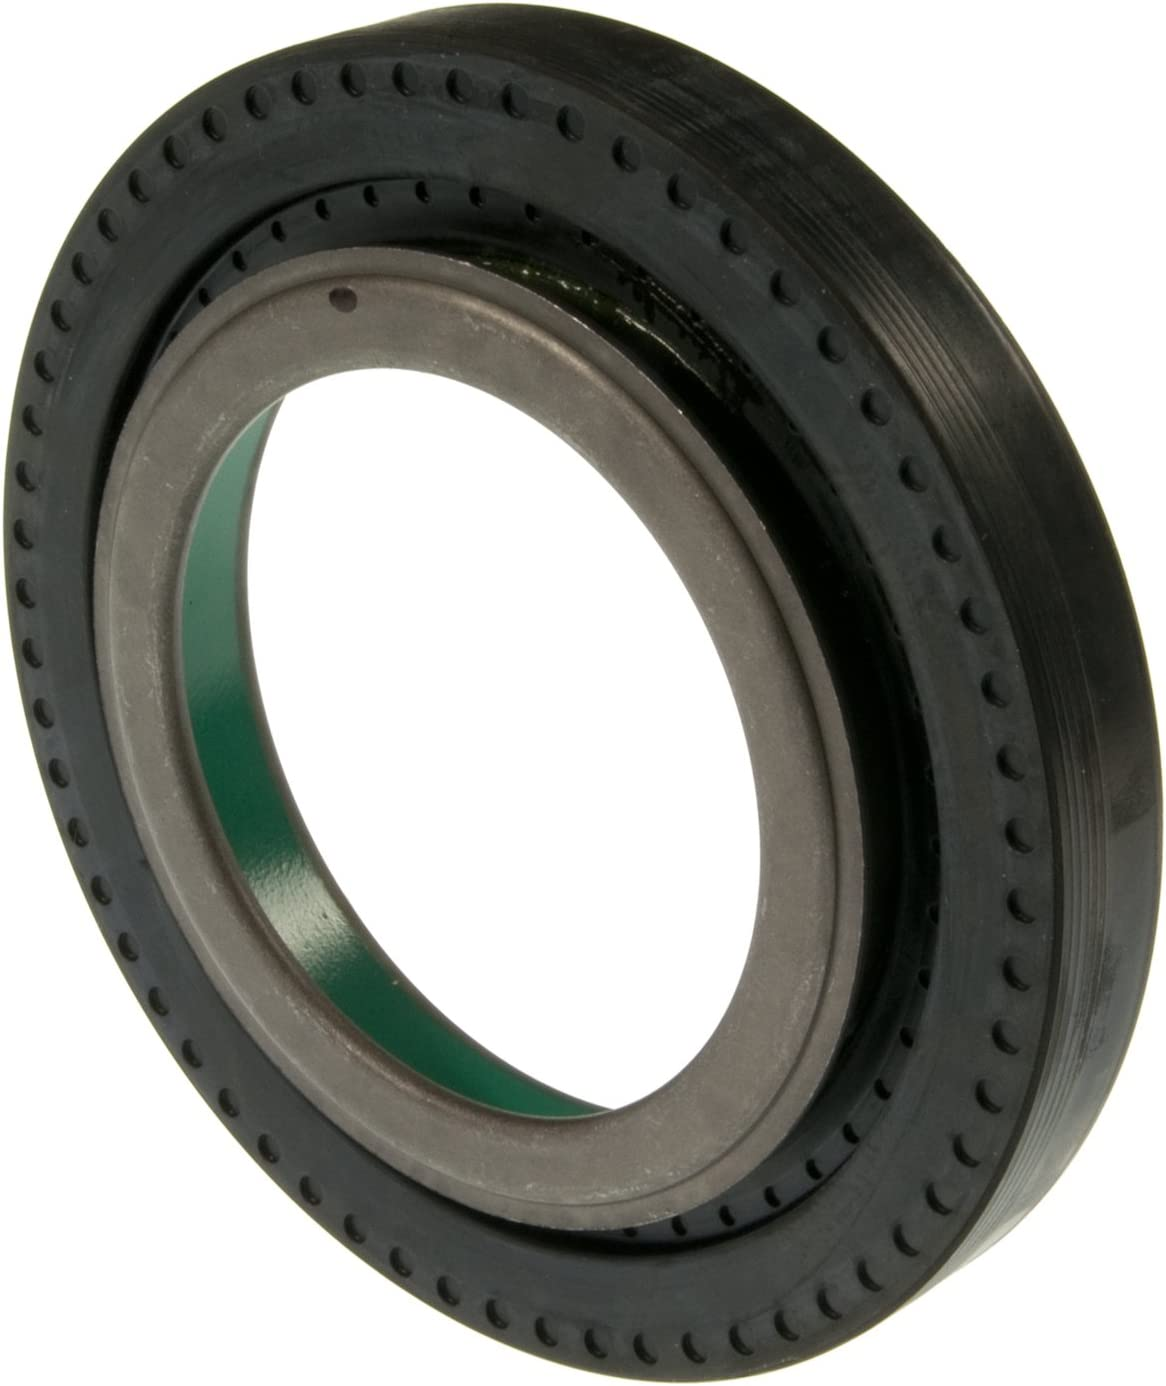 National Oil free Seals New mail order 710685 Axle Shaft Seal